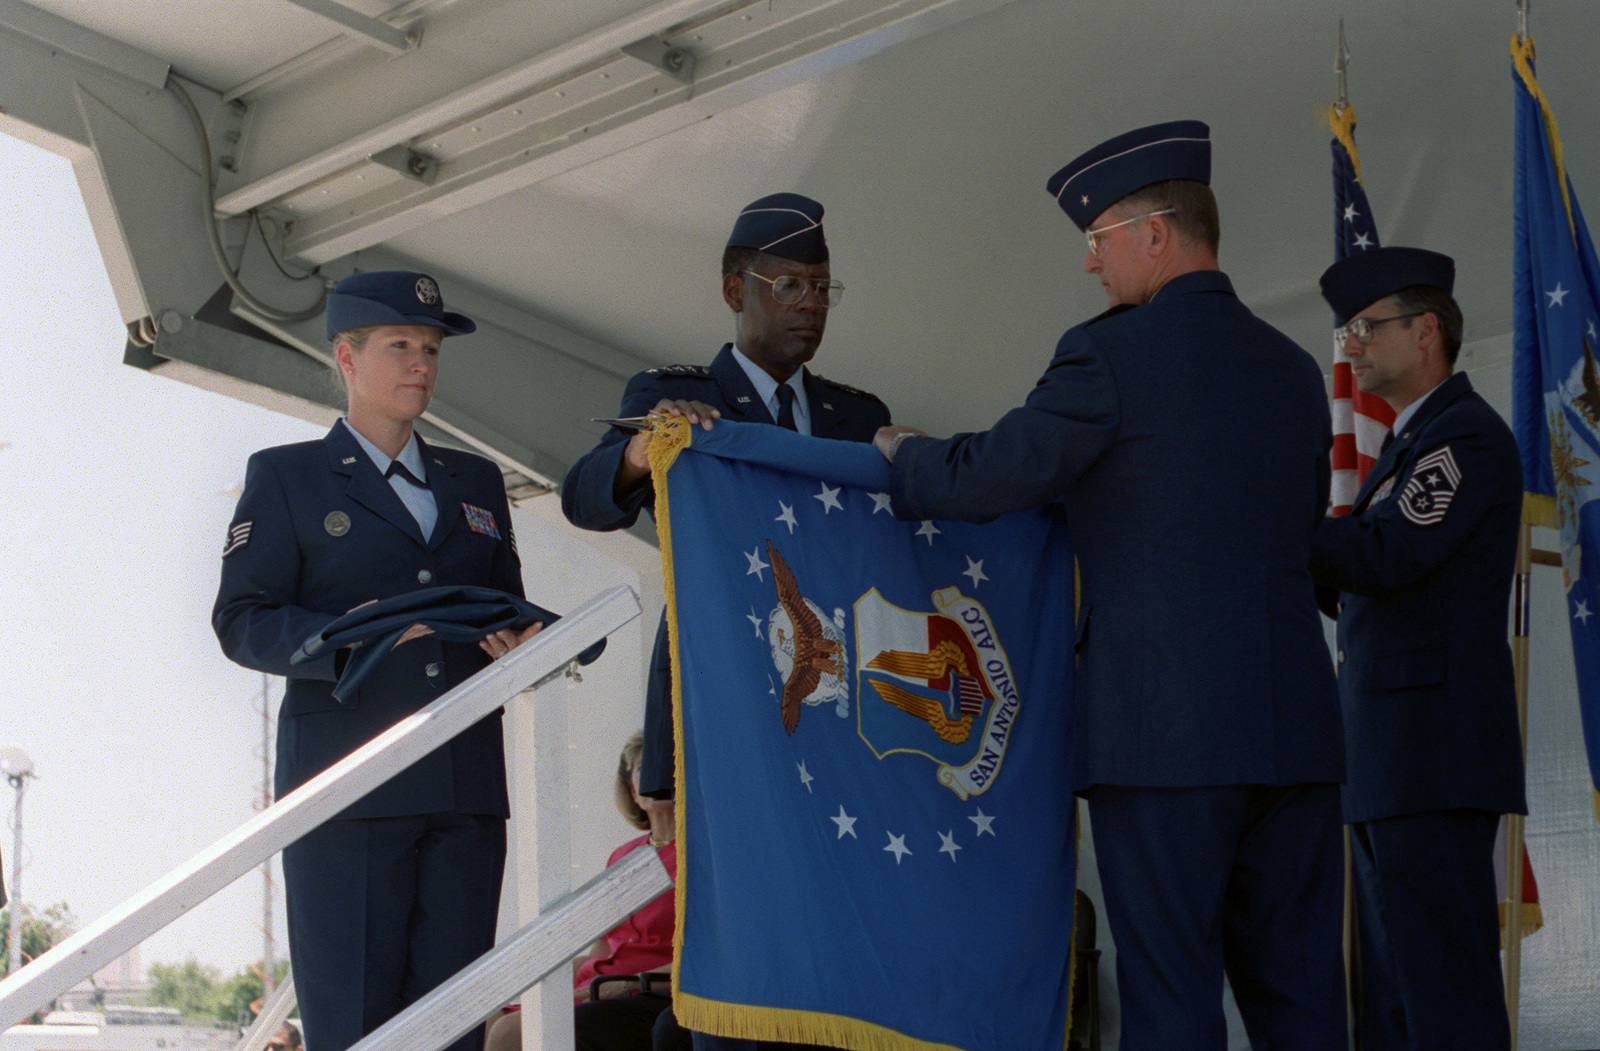 General (GEN) Lester L. Lyles, (left), USAF, Commander, Air Force Material Command (AFMC), and Brigadier General (BGEN) Robert Murdock, USAF, San Antonio - Air Logistics Center (SA-ALC) Commander, roll up the agency's guidon in preparation to case it, during the Kelly AFB closing ceremonies. Although the closing ceremony is in history books, government officials still actually own Kelly property and will until federal and state environmental regulators okay remedies for the installation's 30 sites that need environmental clean-up, according to federal law provisions